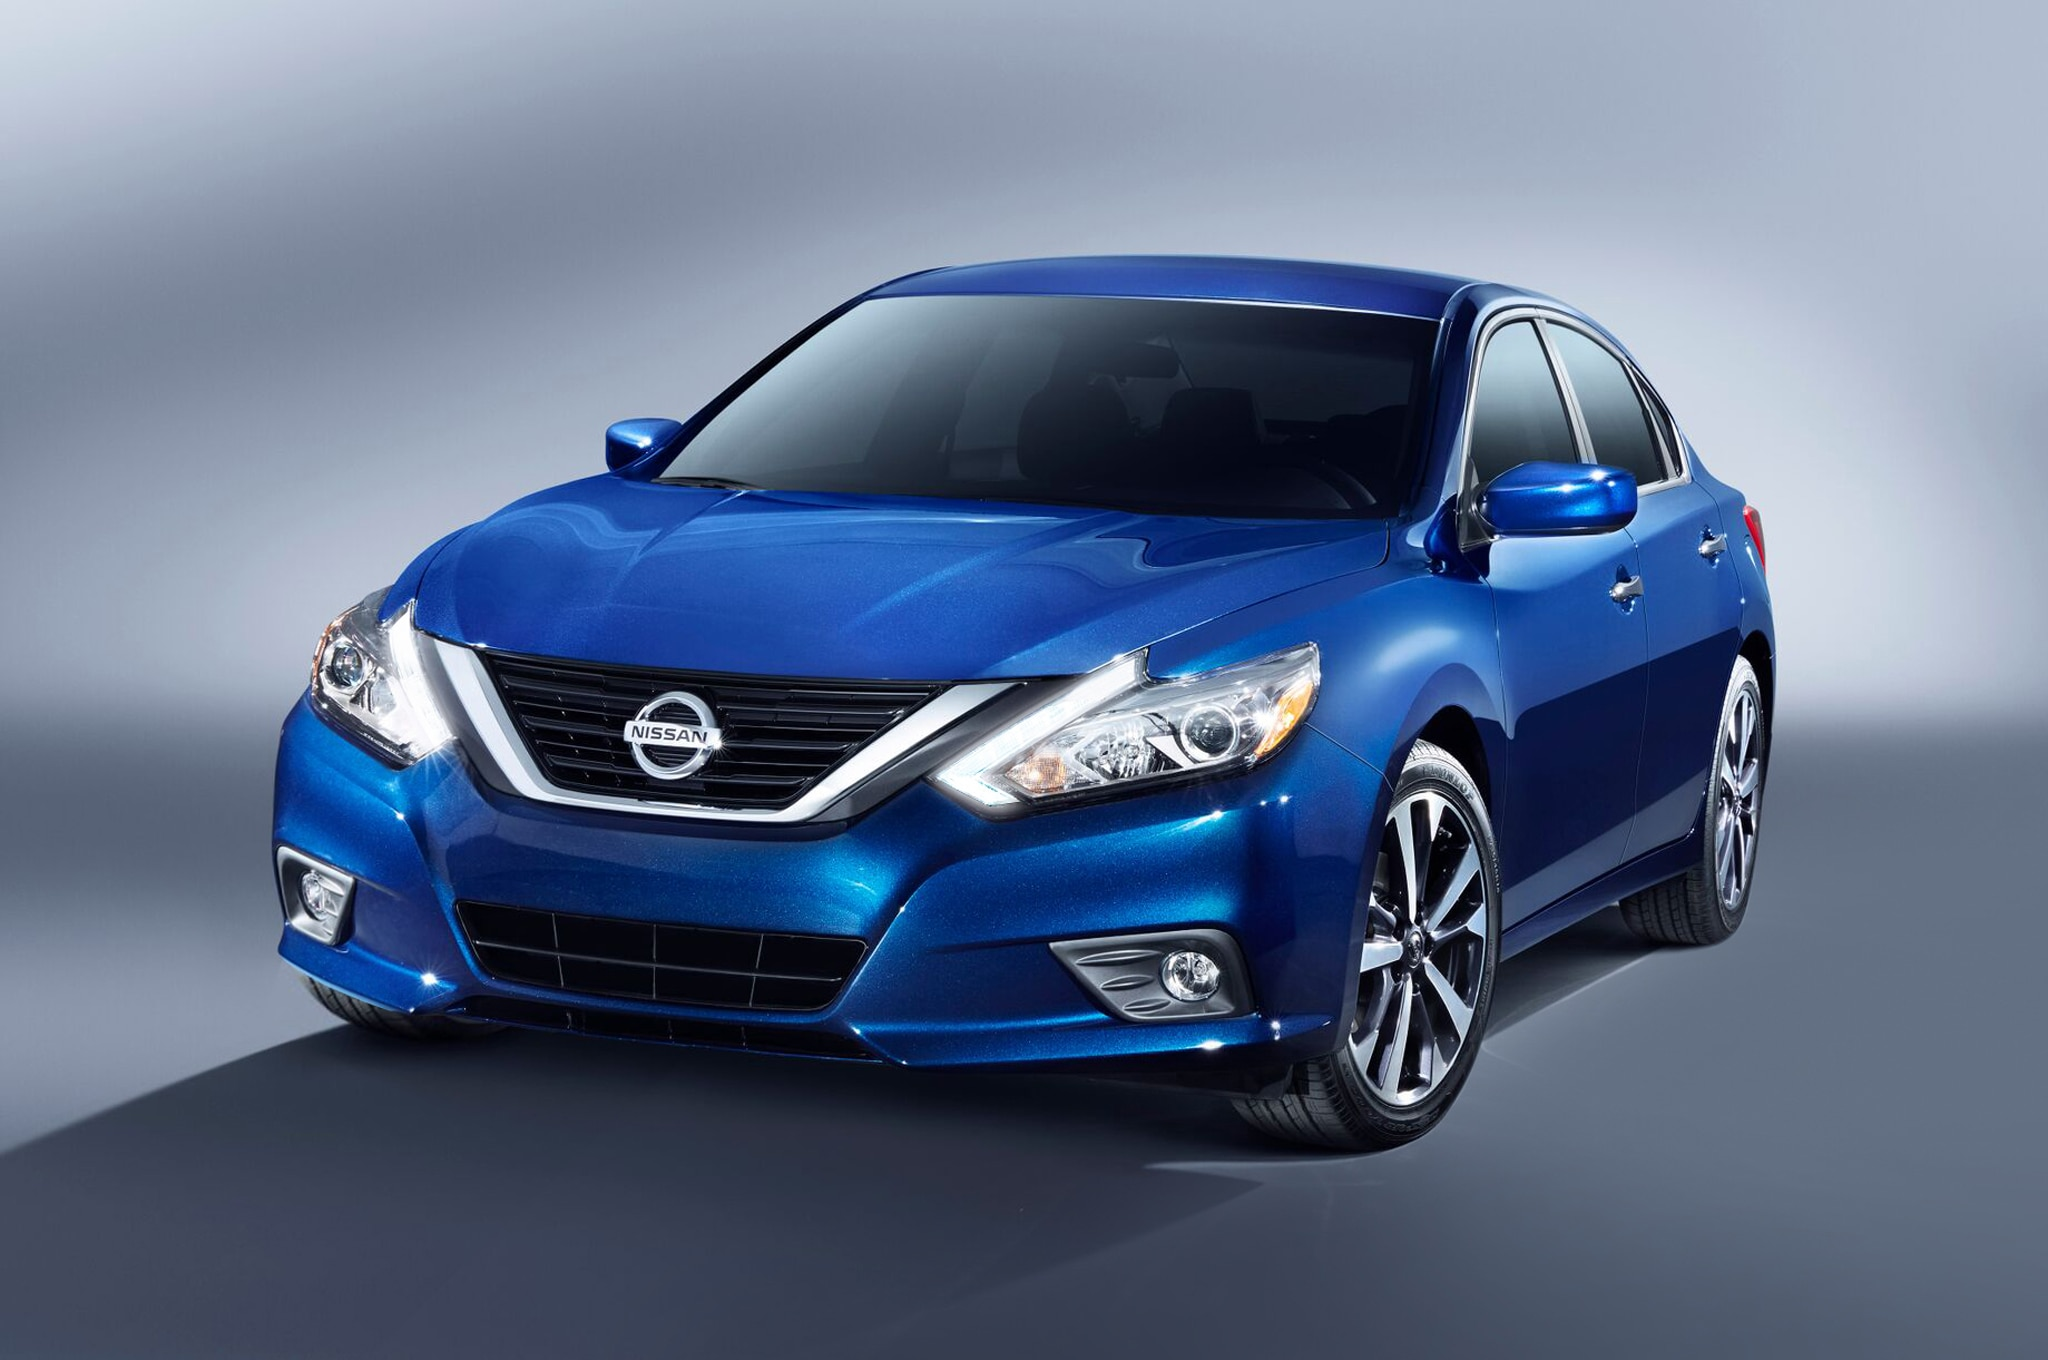 2016 nissan altima updated with maxima like design. Black Bedroom Furniture Sets. Home Design Ideas